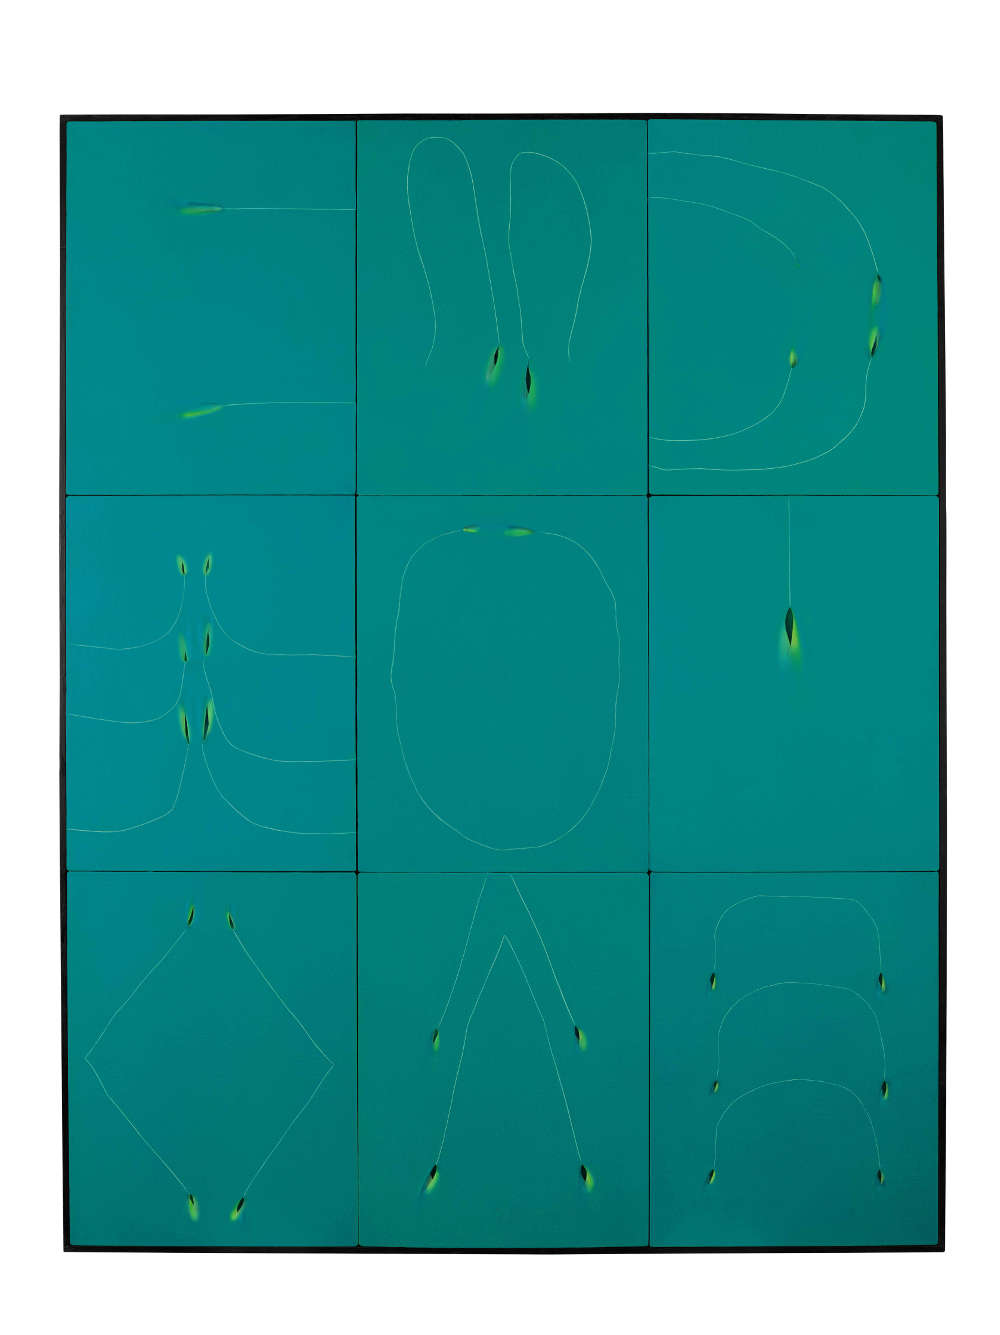 Tsuyoshi Maekawa, UNTITLED, 1975. Signed in Japanese (on a label affixed to the reverse). Acrylic on sewn canvas on plywood in artist's frame 161.5 by 125.5 cm. 63 1/2 by 49 1/2 in.